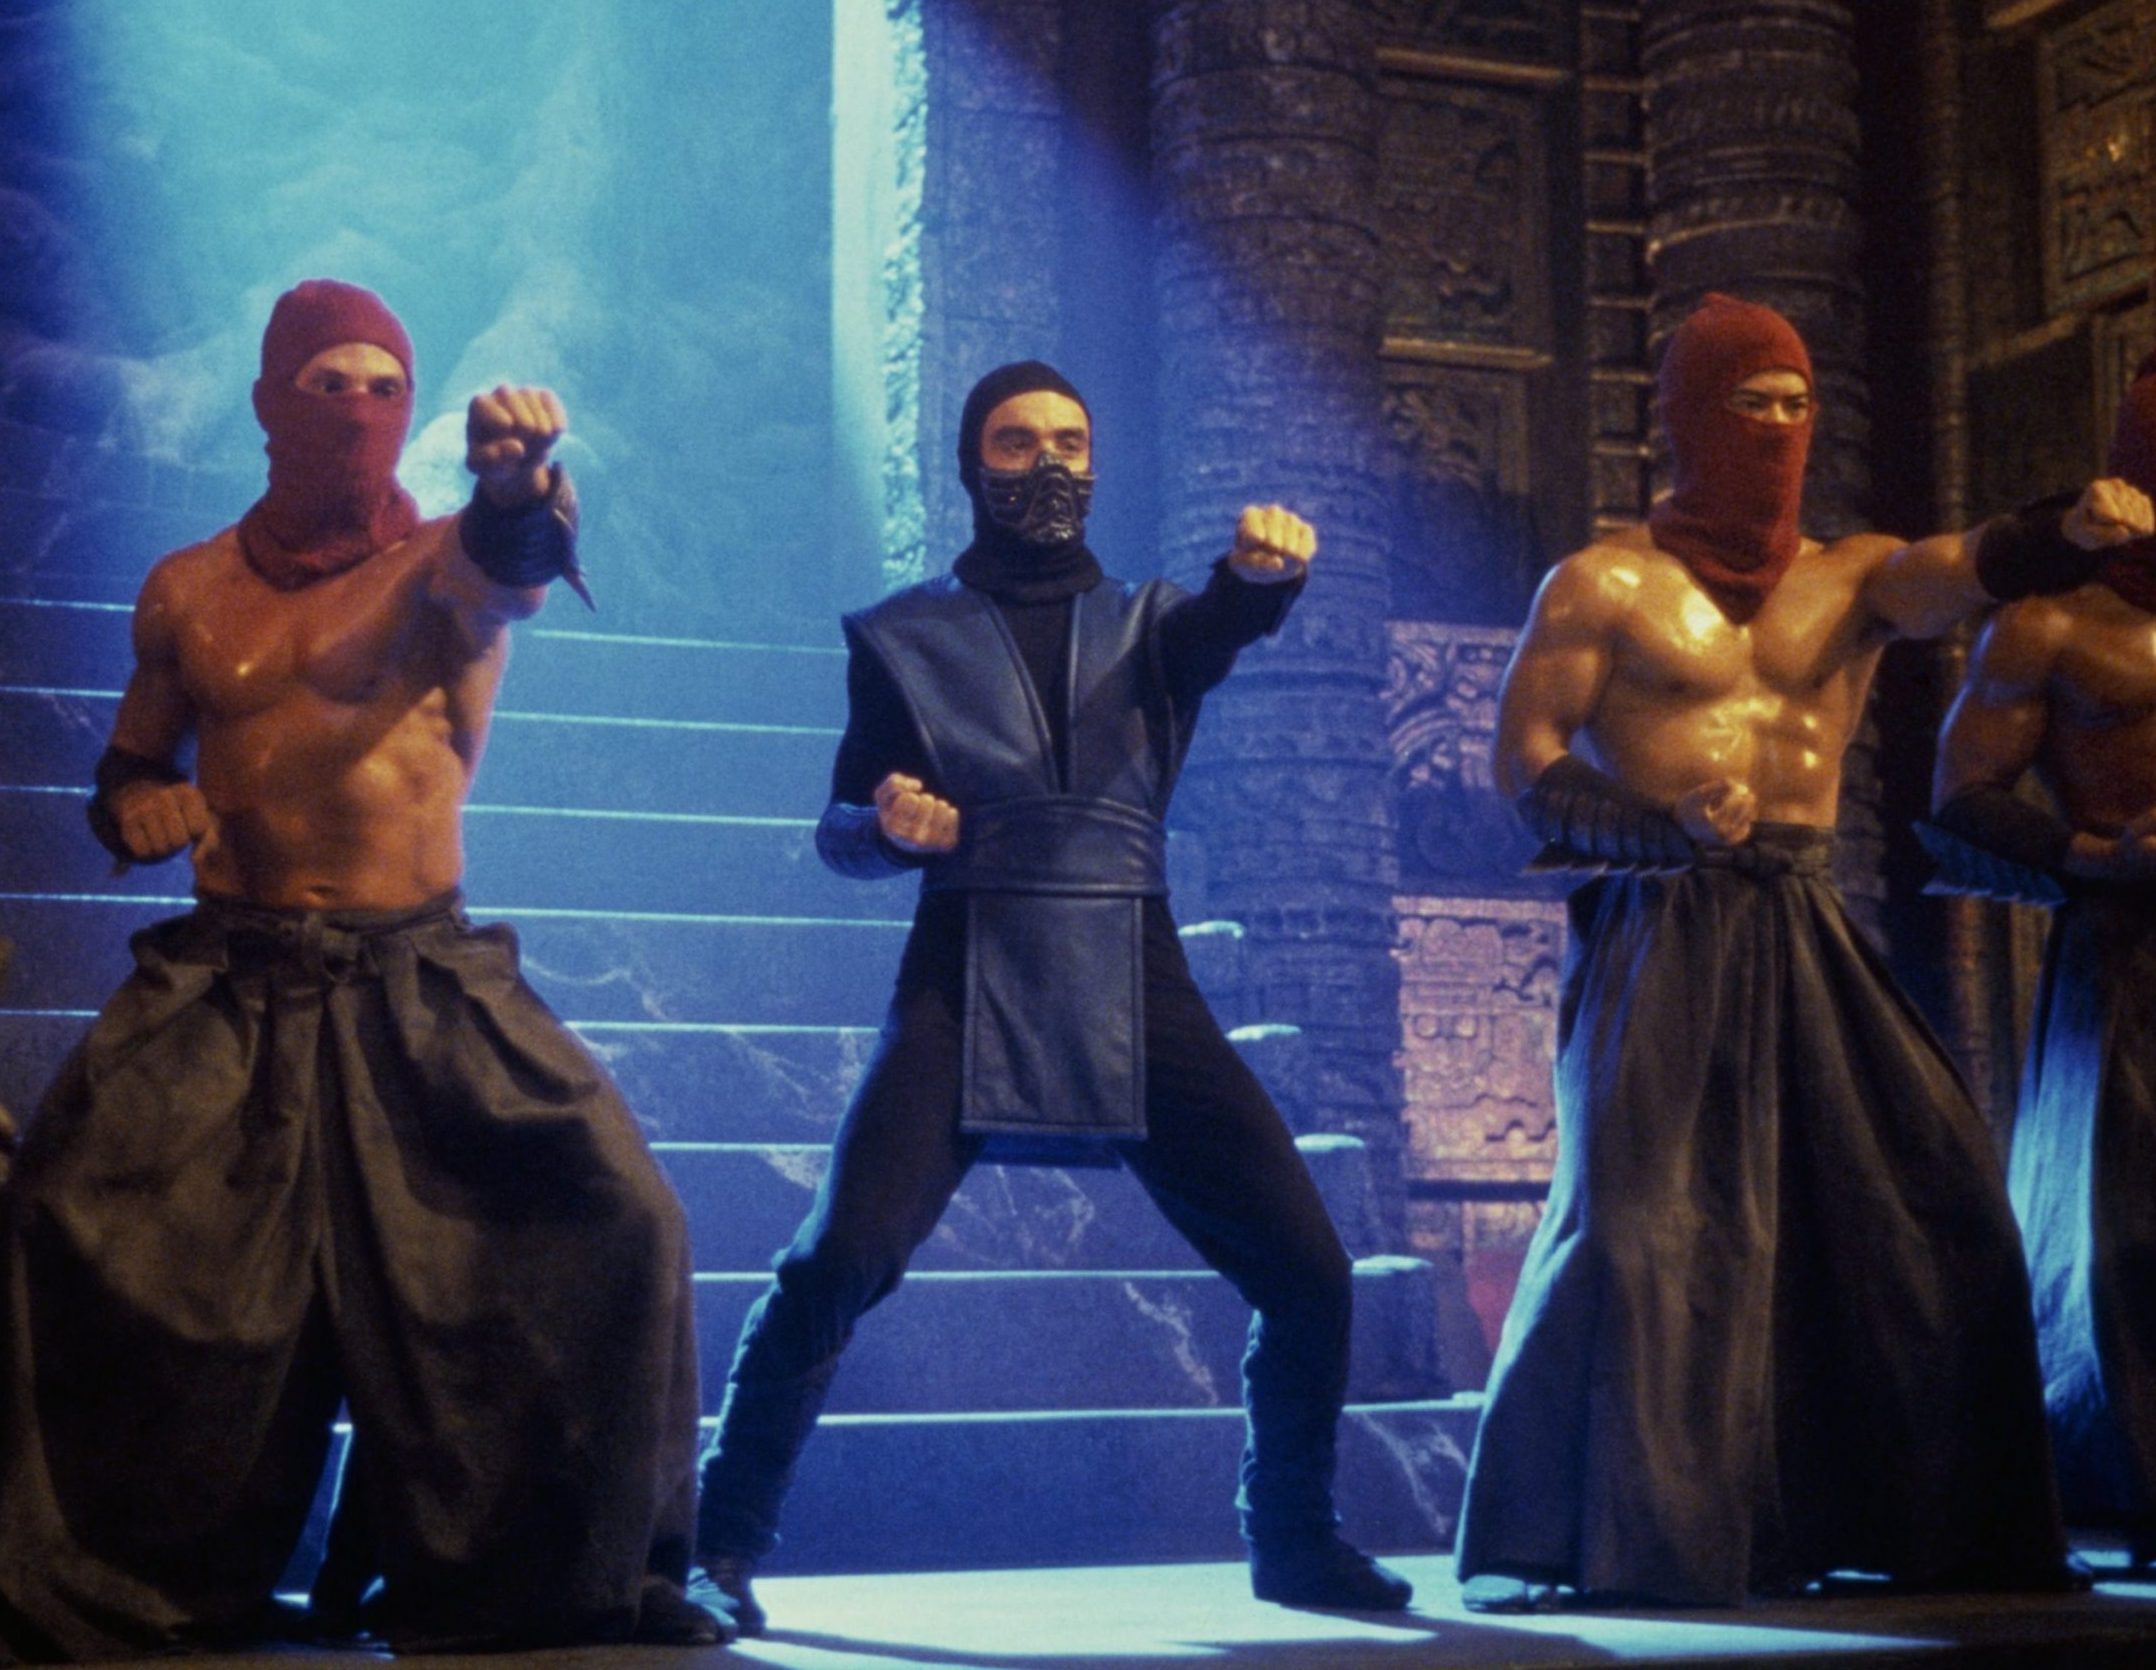 mortal kombat 02 scaled e1620208075989 Flawless Victory! 20 Things You Didn't Know About The 1995 Mortal Kombat Movie